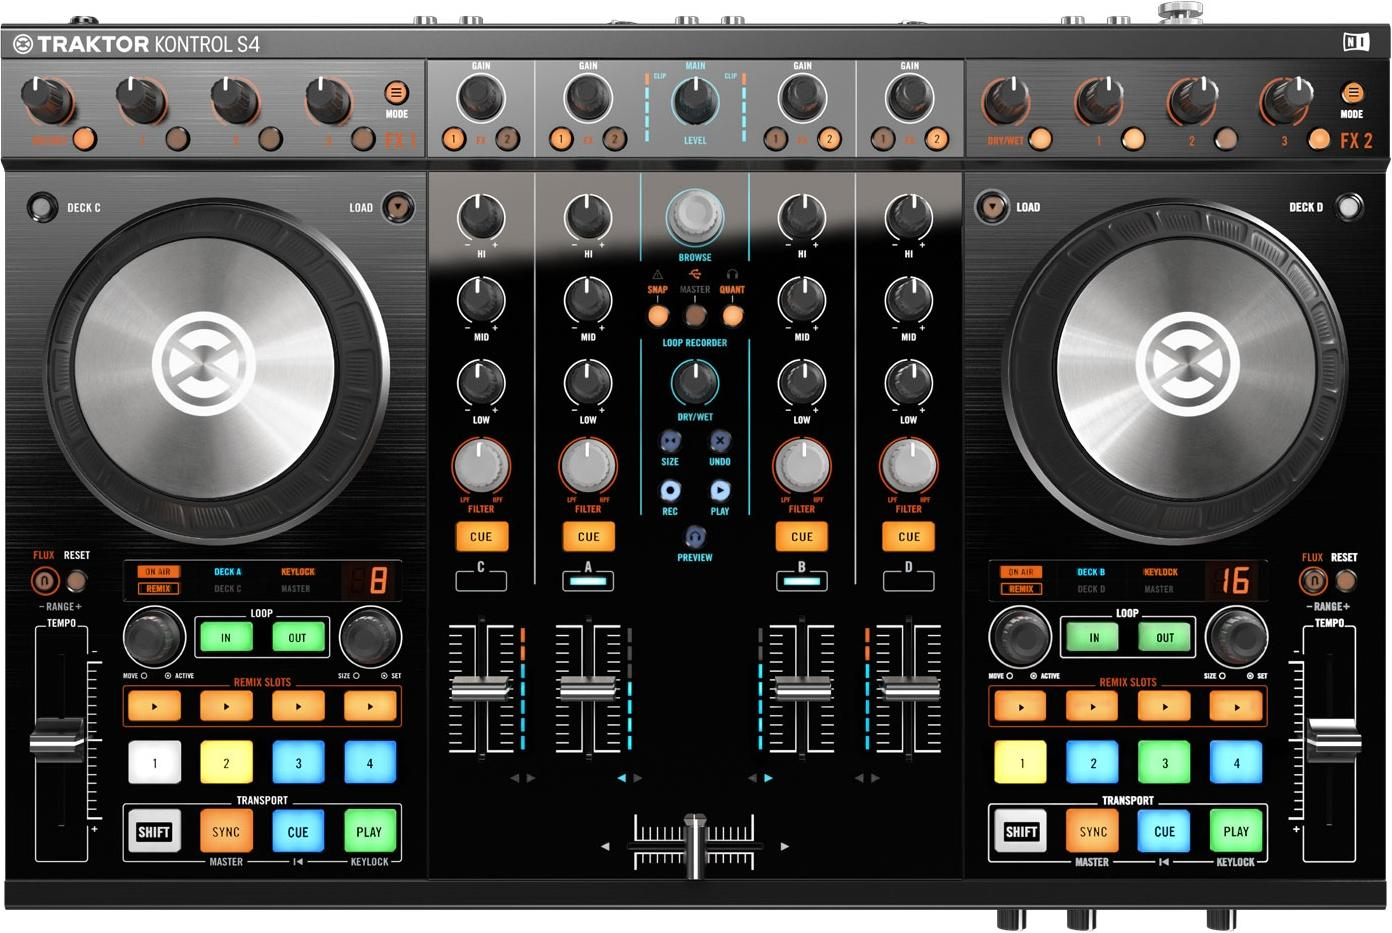 Pioneer Djm 800850900900 Srt Colored Knob Kits also View W  w 3 1920x1080 also Sx 980 furthermore 14k 6mm Solid Polished Cable Chain P448621 together with Pioneer Vsx 1123 K. on pioneer mic